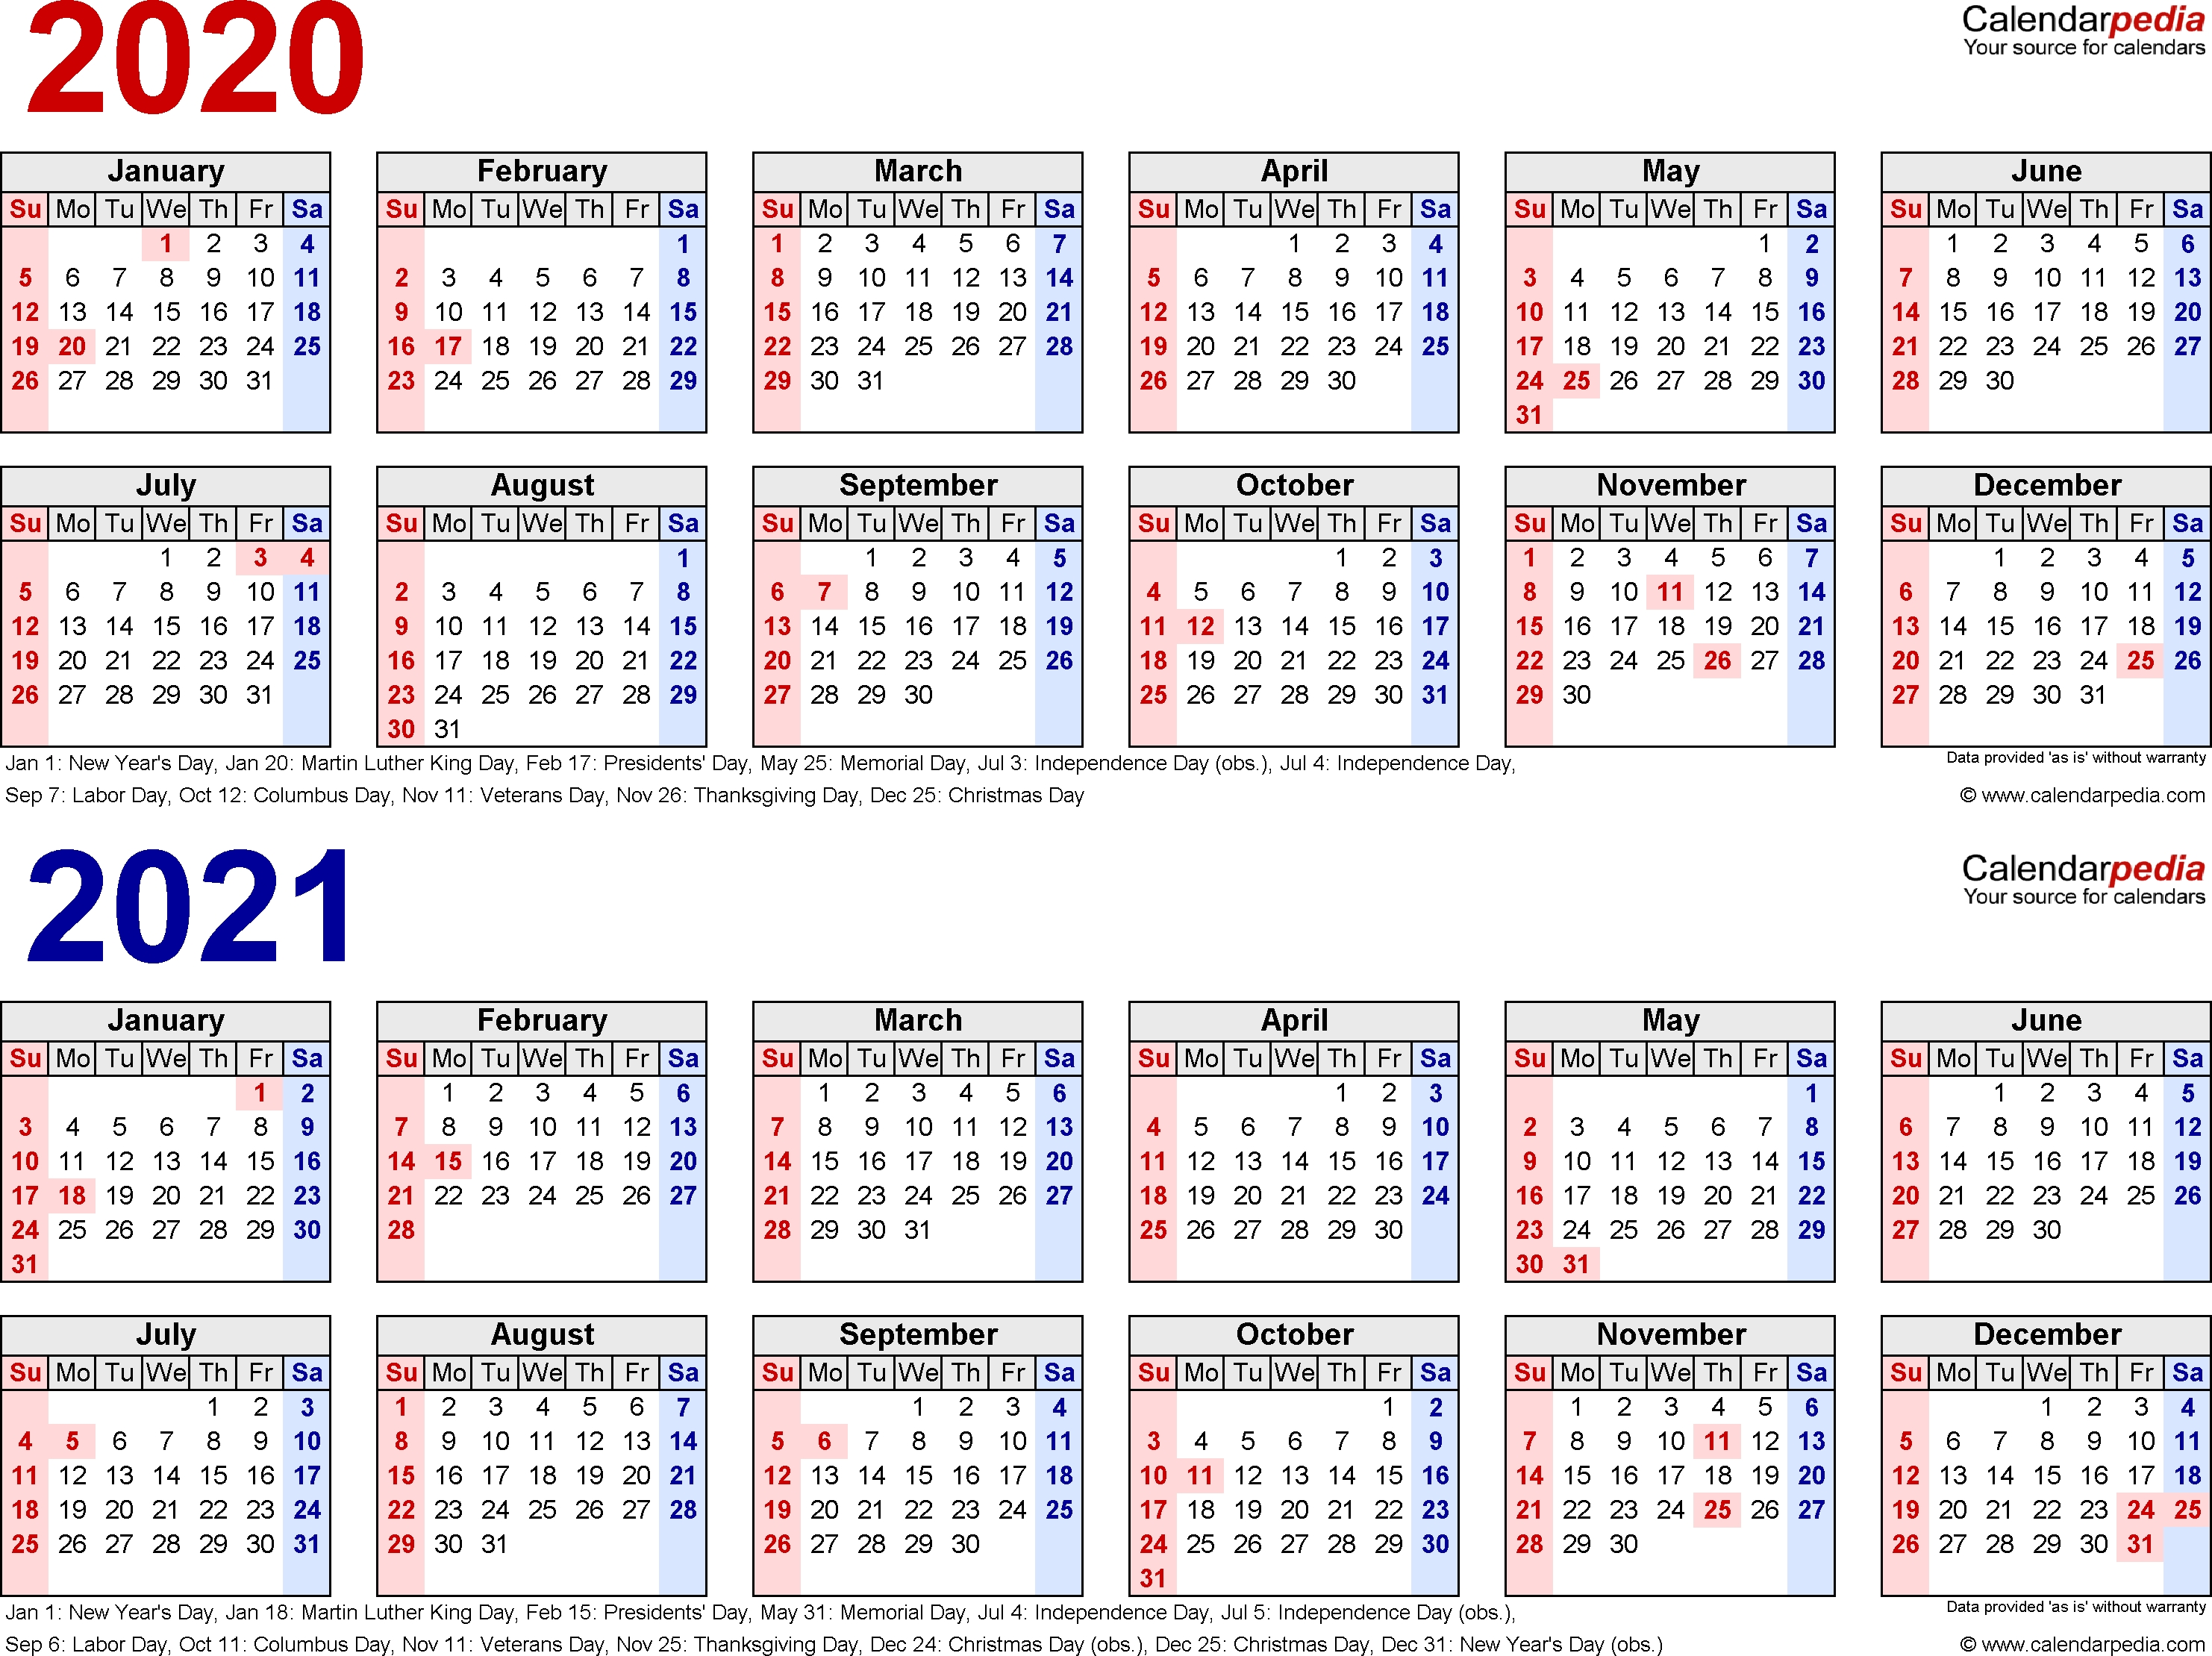 2020-2021 Calendar - Free Printable Two-Year Excel Calendars Incredible 2020 Calendar Philippines With Holidays